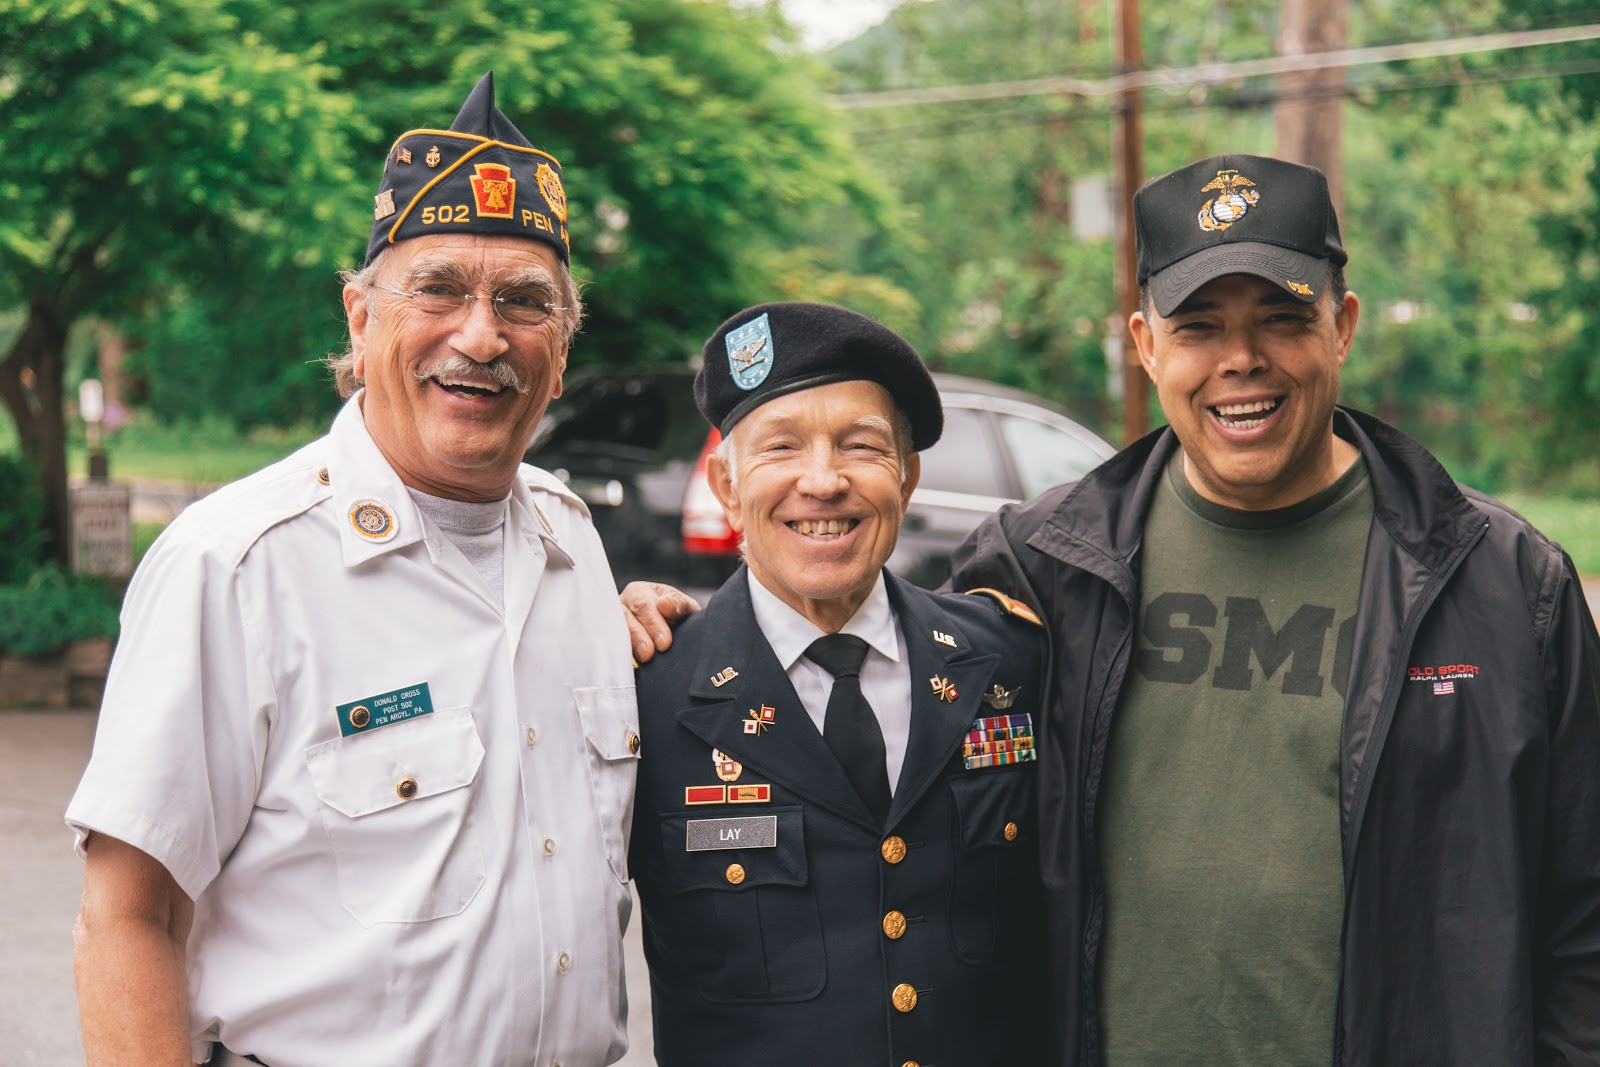 Three smiling veterans